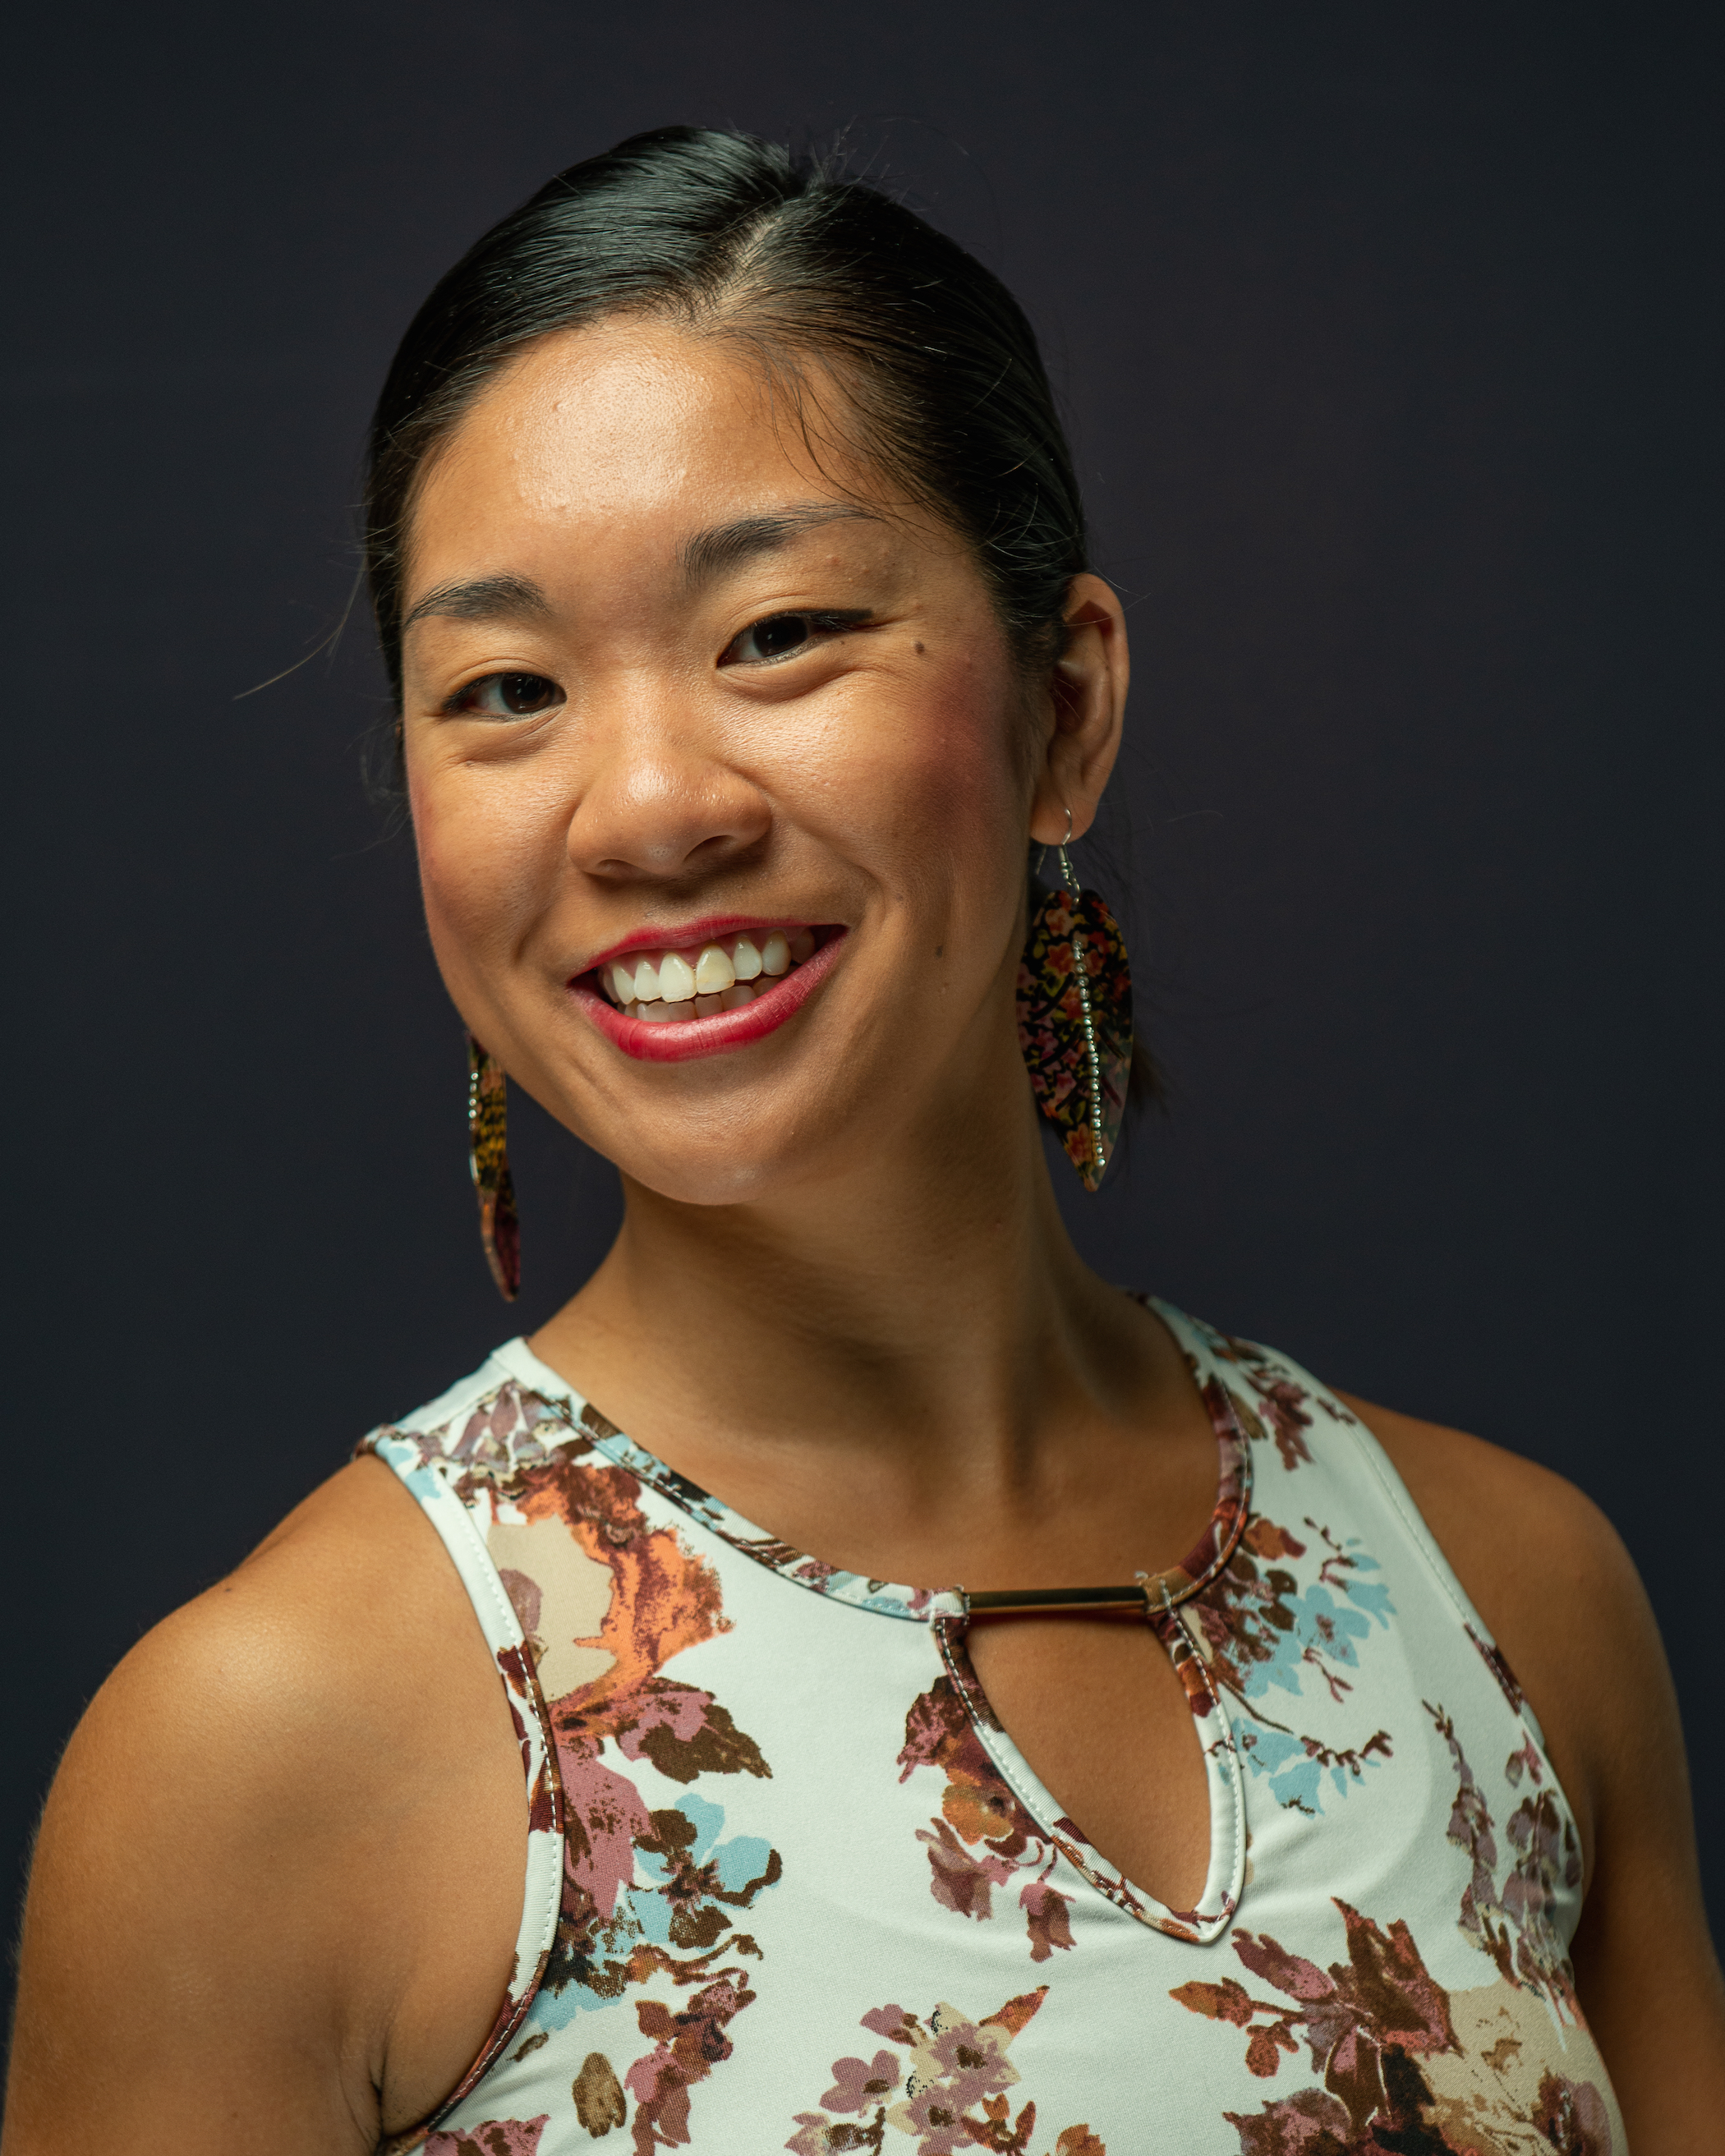 Carol Tang  , a native of Cincinnati, Ohio, began her classical training at the age of ten with Cincinnati Ballet. She had the privilege of performing with the company in ballet such as Val Caniparoli's Nutcracker, Kirk Peterson's The Sleeping Beauty, Swan Lake and Giselle. In 2004 & 2005, Mrs. Tang placed in the top 12 at the Youth American Grand Prix regional semi- finals. In addition to Cincinnati Ballet, Mrs. Tang has also studied at Ballet Internationale, Steps on Broadway, and China's Shanghai Ballet. She has worked closely with Irina Chistyakova, Shellie Cash, Jian Qi, Deidre Carberry, Devon Carney, Xin Lili, Patrick Notaro and Ka-Ron Brown Lehman. She is a scholarship graduate with a BFA in ballet performance from the University of Cincinnati College-Conservatory of Music. In 2011, she joined Island Moving Company for three seasons. During her career, she has performed Giselle in Giselle, Soloist in Balanchines's Walpurgisnacht, Principal in Paquita, Sugar Plum Fairy as a guest artist with Greenville Ballet, and parts in Le Corsaire and La Bayadere. With Ballet San Antonio, she has performed The Nutcracker, Ben Stevenson's Romeo and Juliet as Lady Capulet, Balachine's Donizetti Variations, Gabriel Zertuche's Dracula, Arvo, Scheherazade and Butterflying. In 2015, before her debut as odette/odile in Ben Stevenson's Swan Lake, she was promoted to Soloist in 2015.